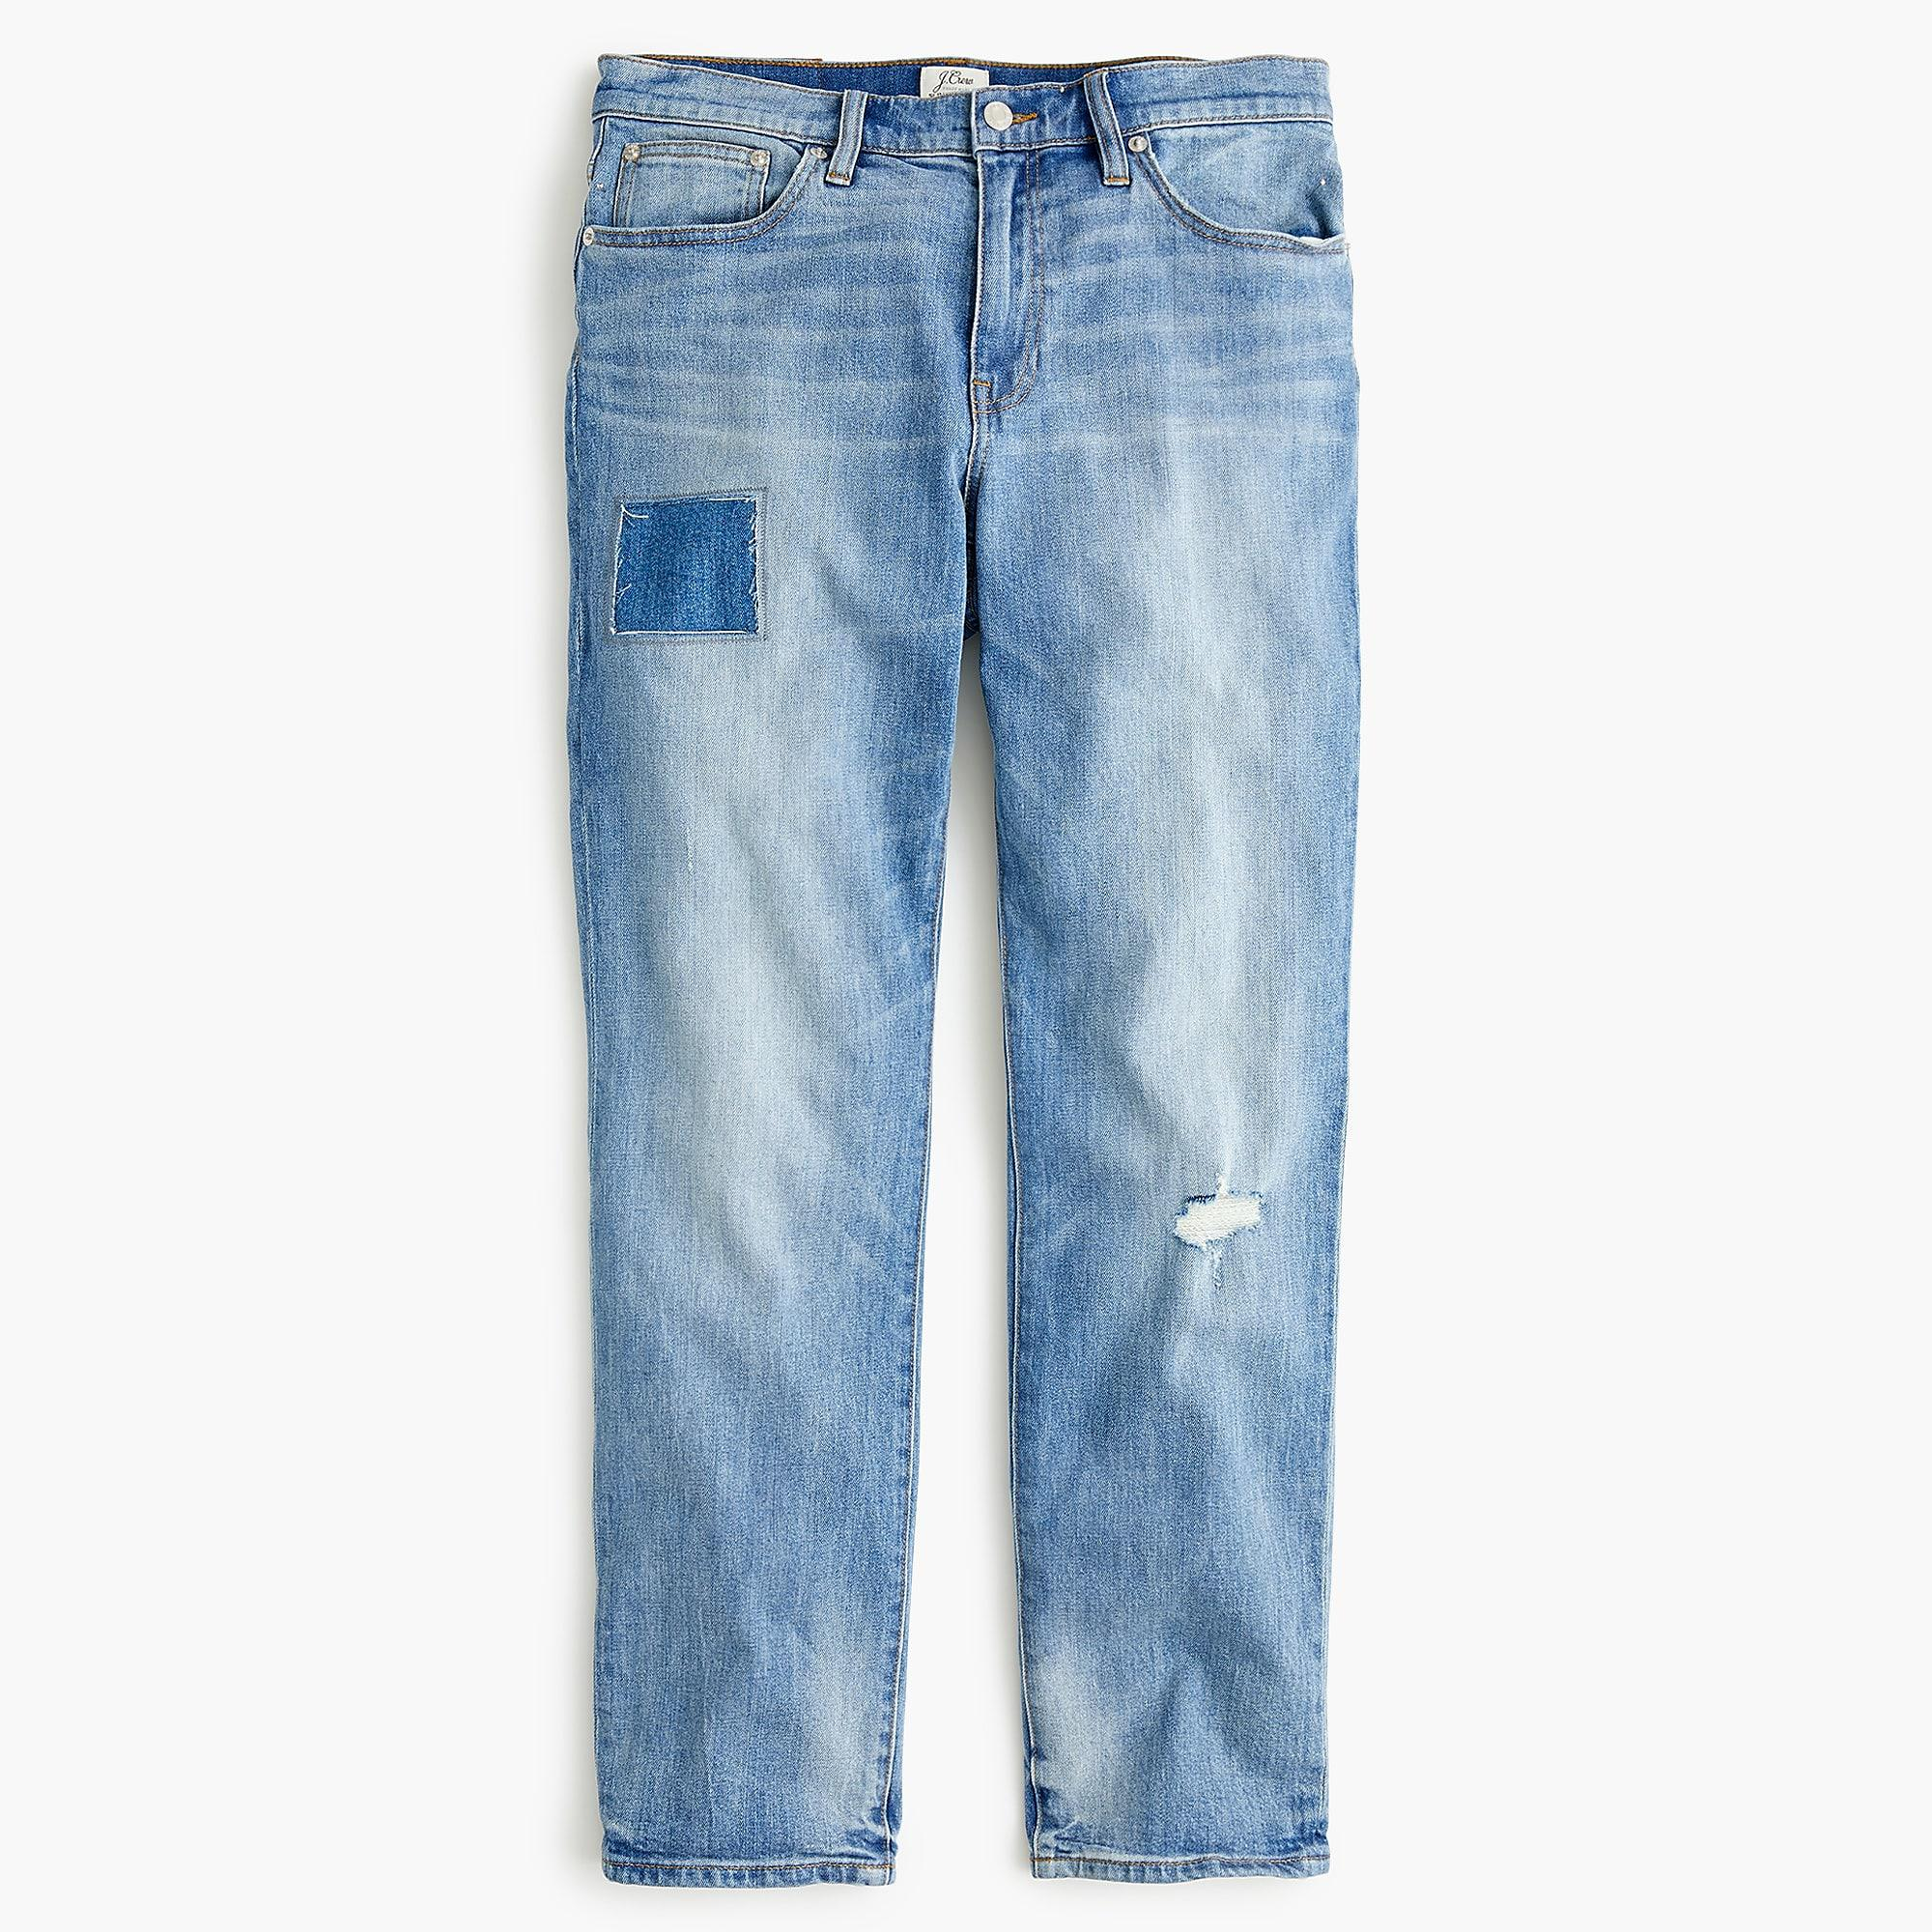 919ecb733ab824 Lyst - J.Crew Petite Slim Boyfriend Jean With Patch And Distressing in Blue